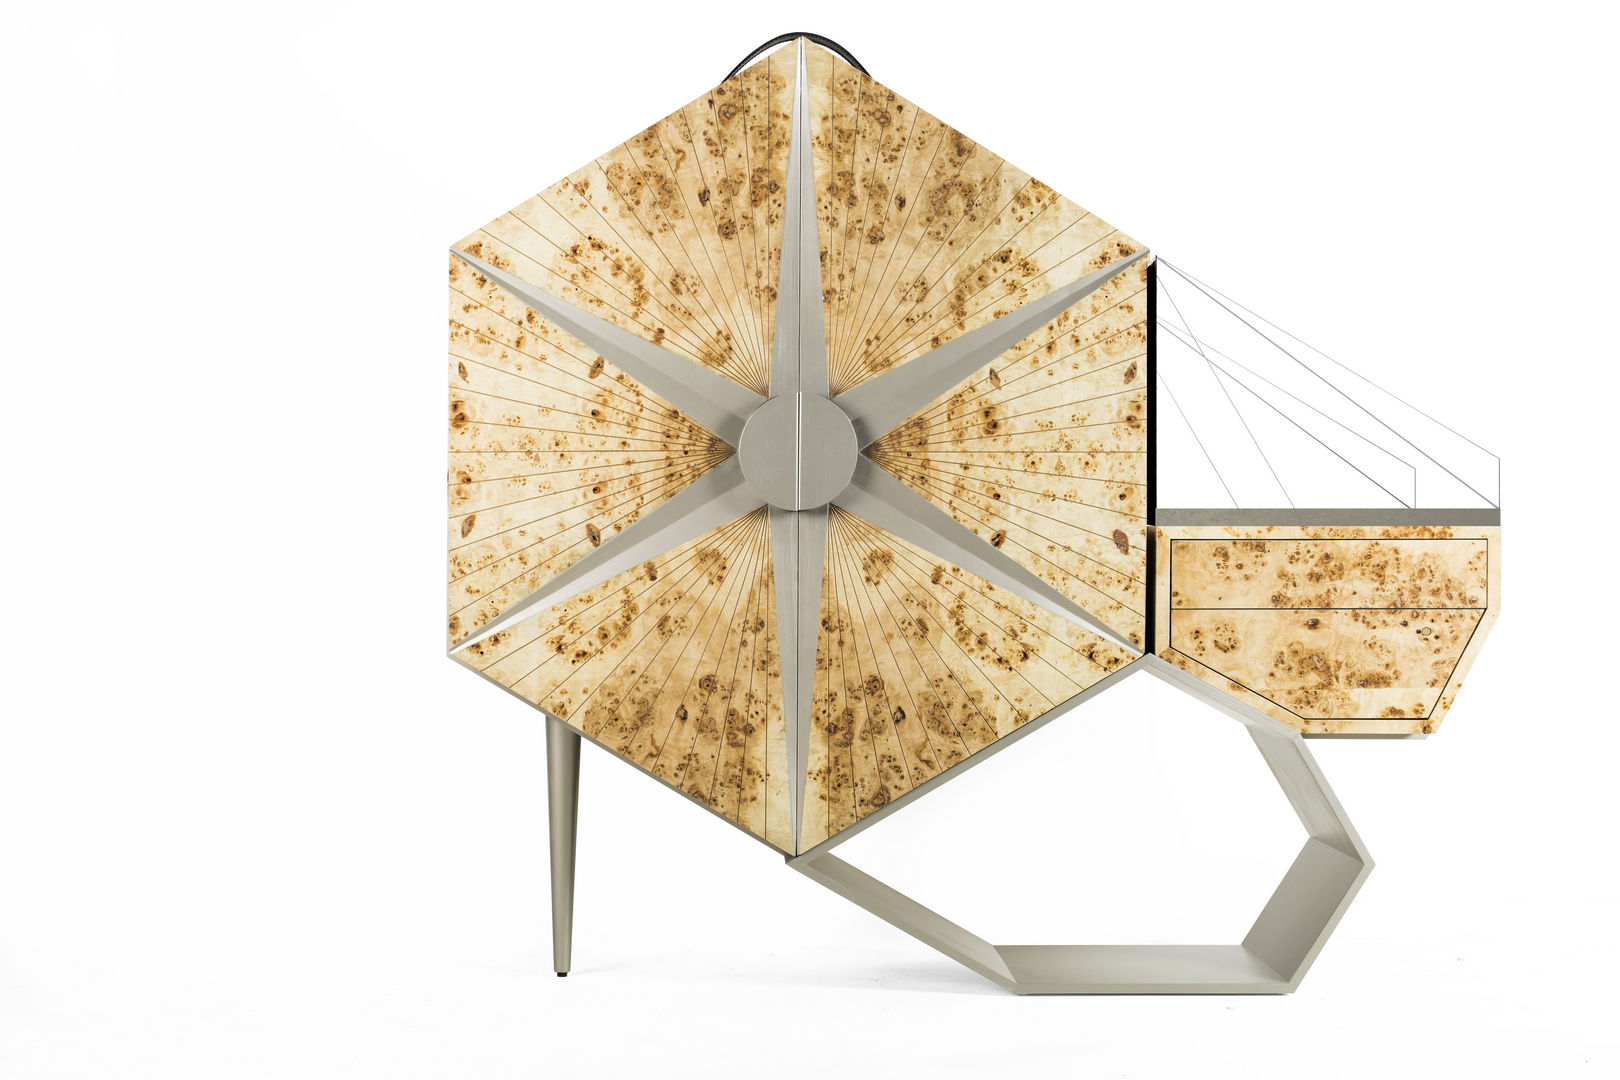 Architect Philippe Daher to showcase new furniture pieces at Beirut Art Week